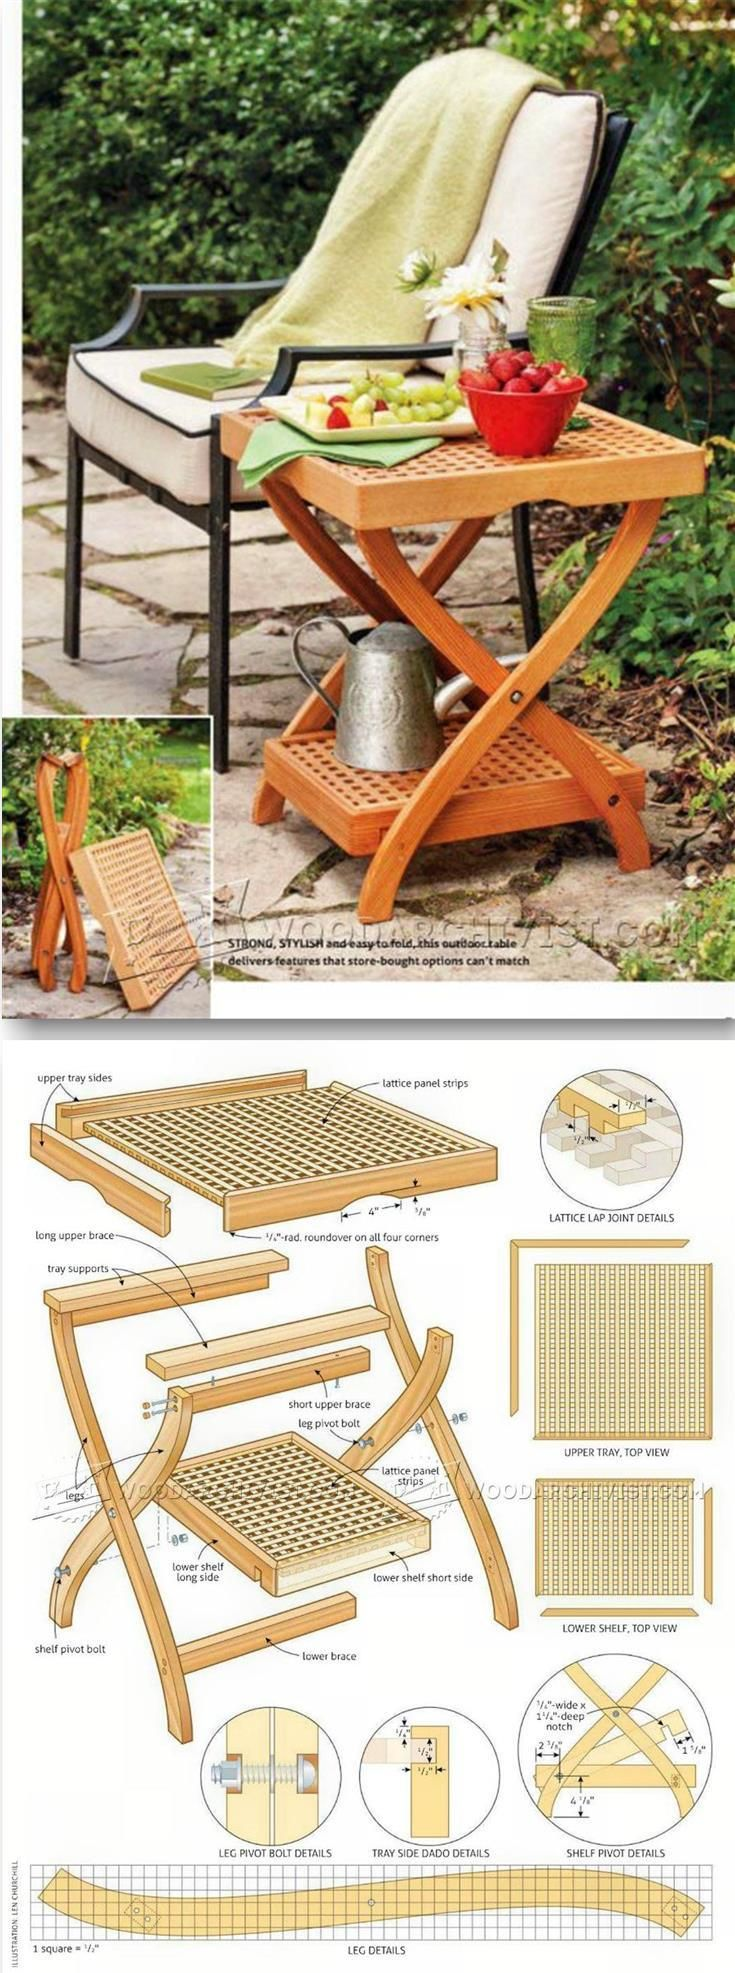 butler tray table plans outdoor furniture plans and projects woodarchivistcom